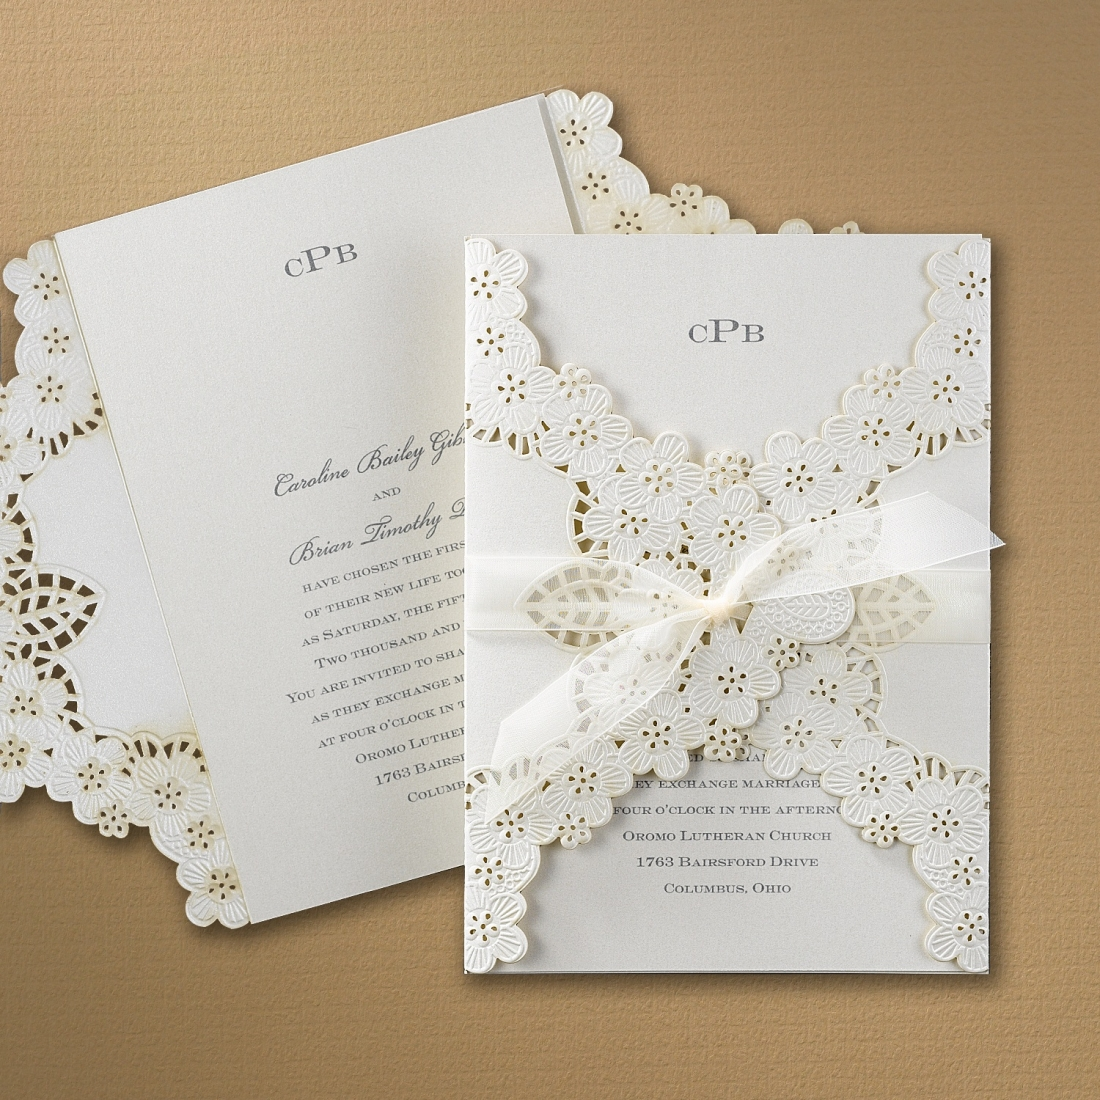 All About That Lace - persnickety invitation studio